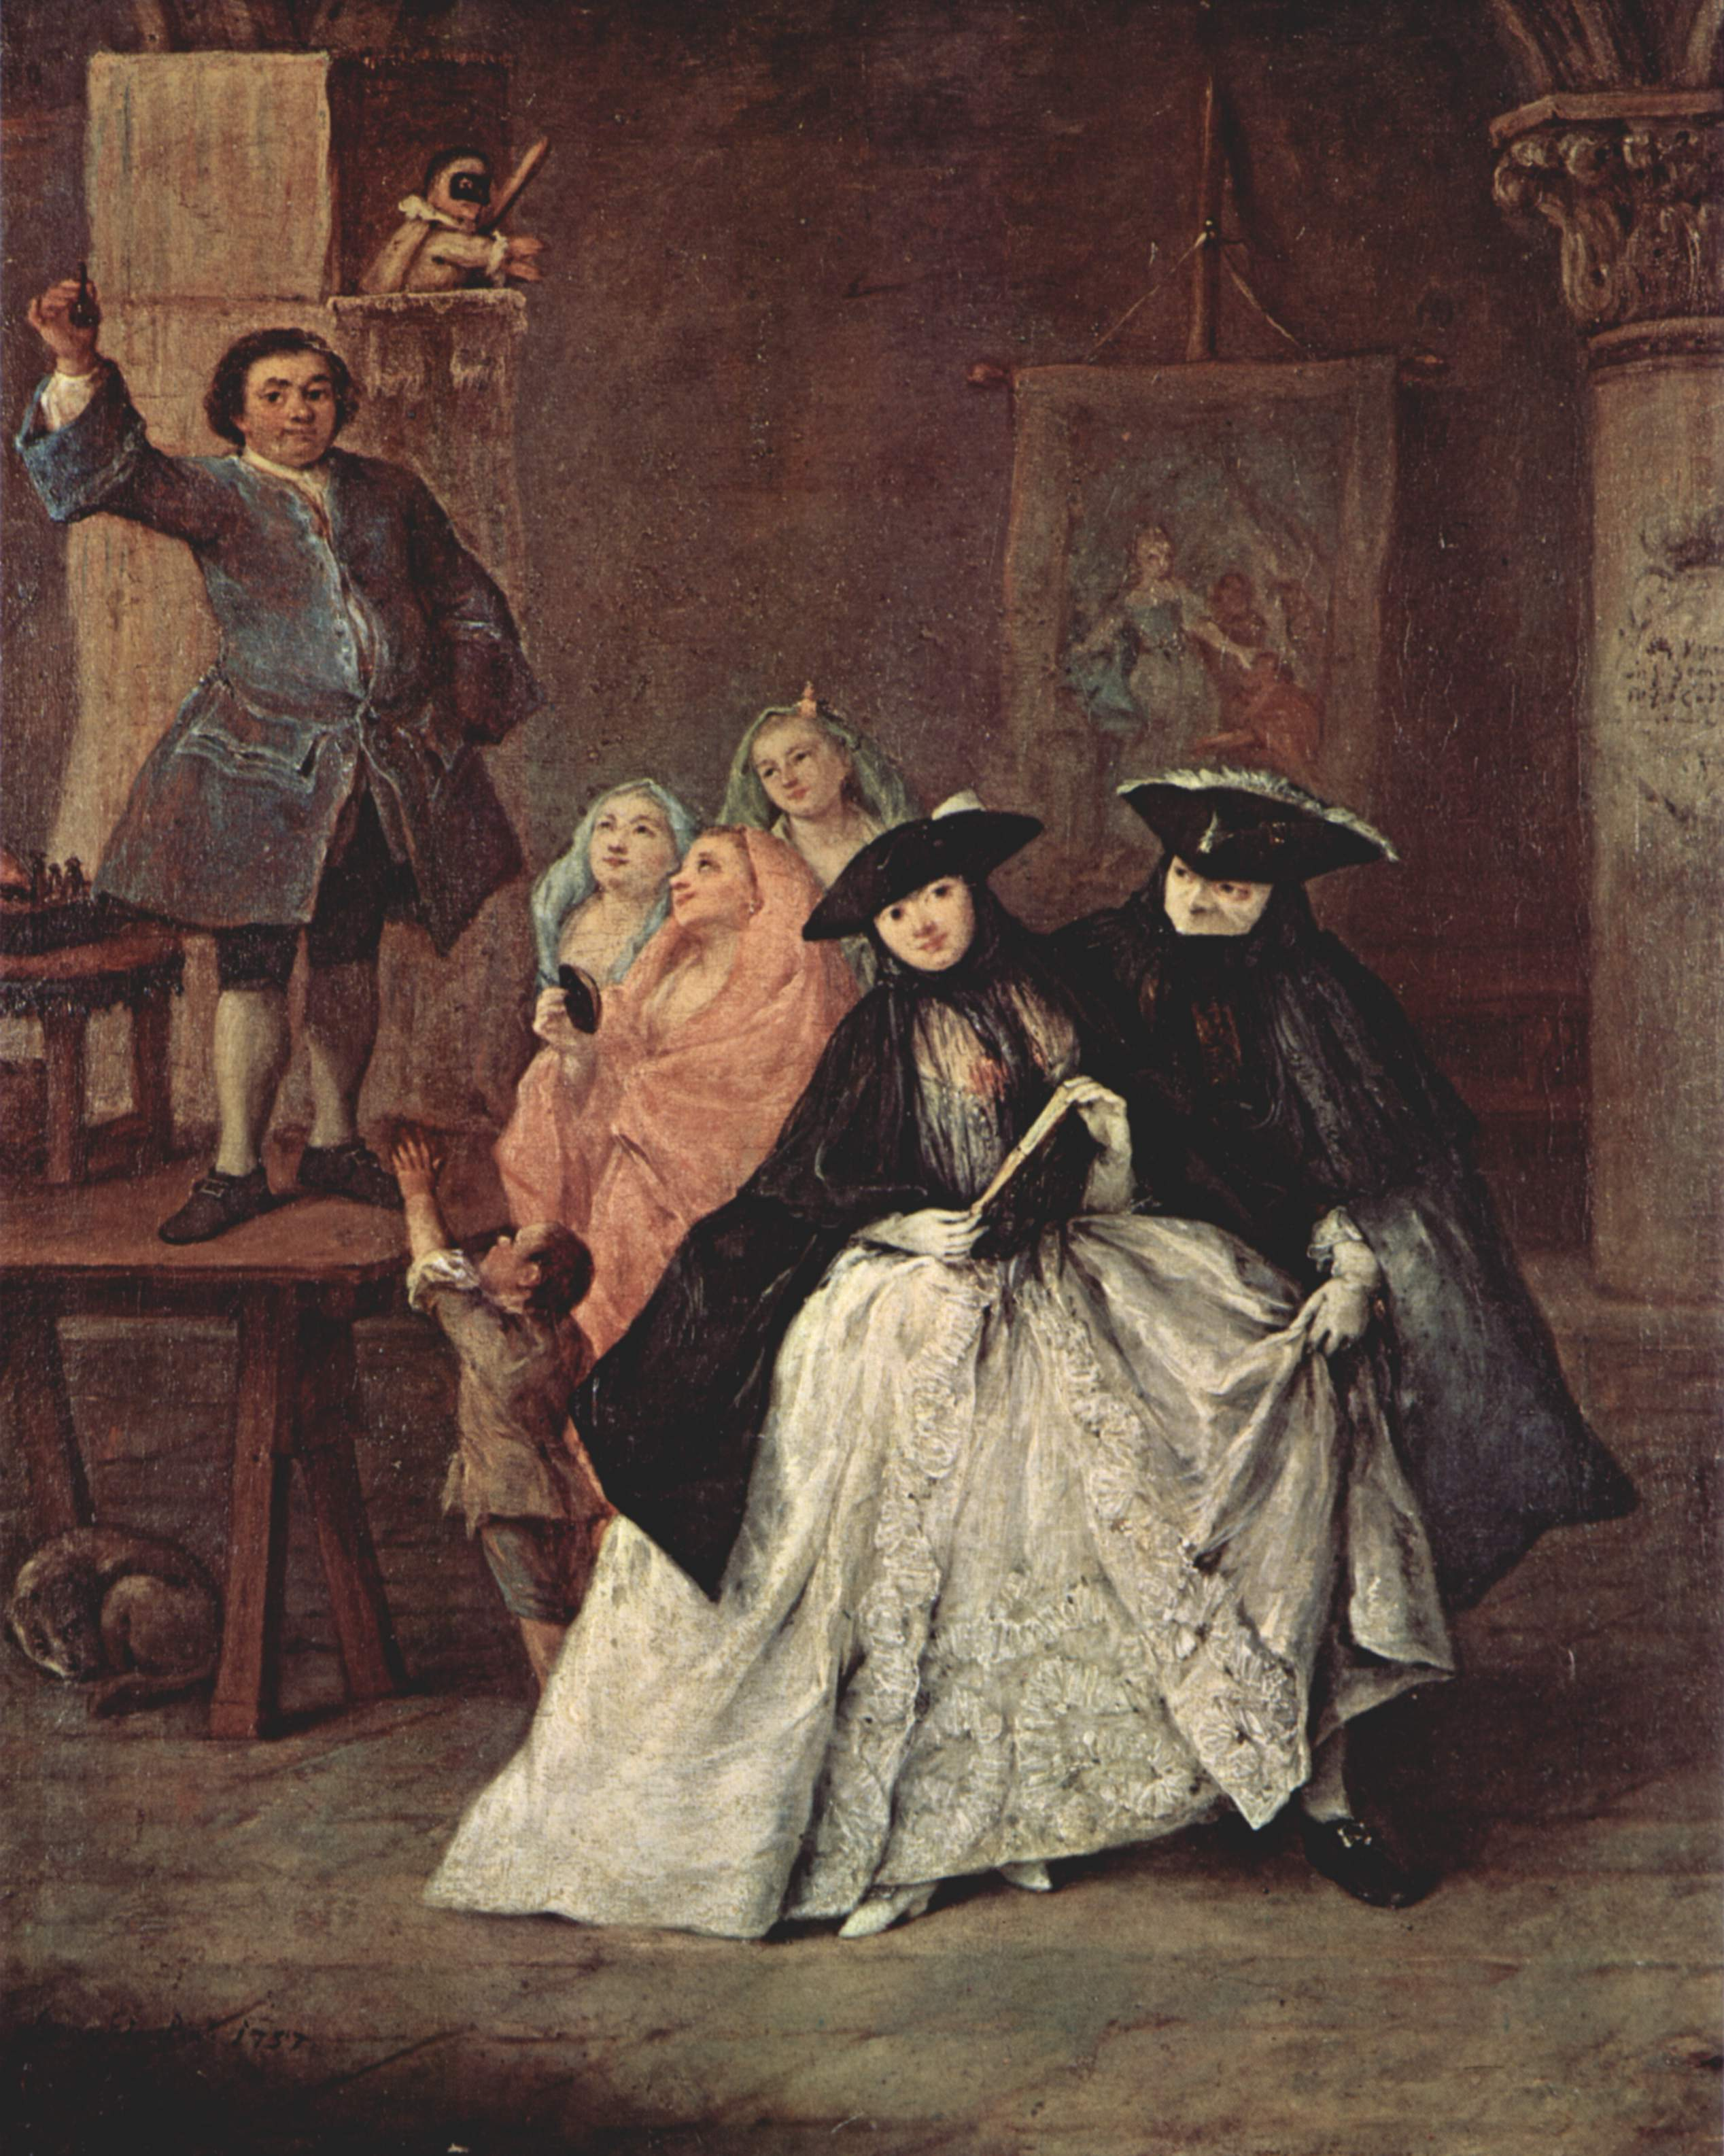 https://upload.wikimedia.org/wikipedia/commons/c/c0/Pietro_Longhi_015.jpg